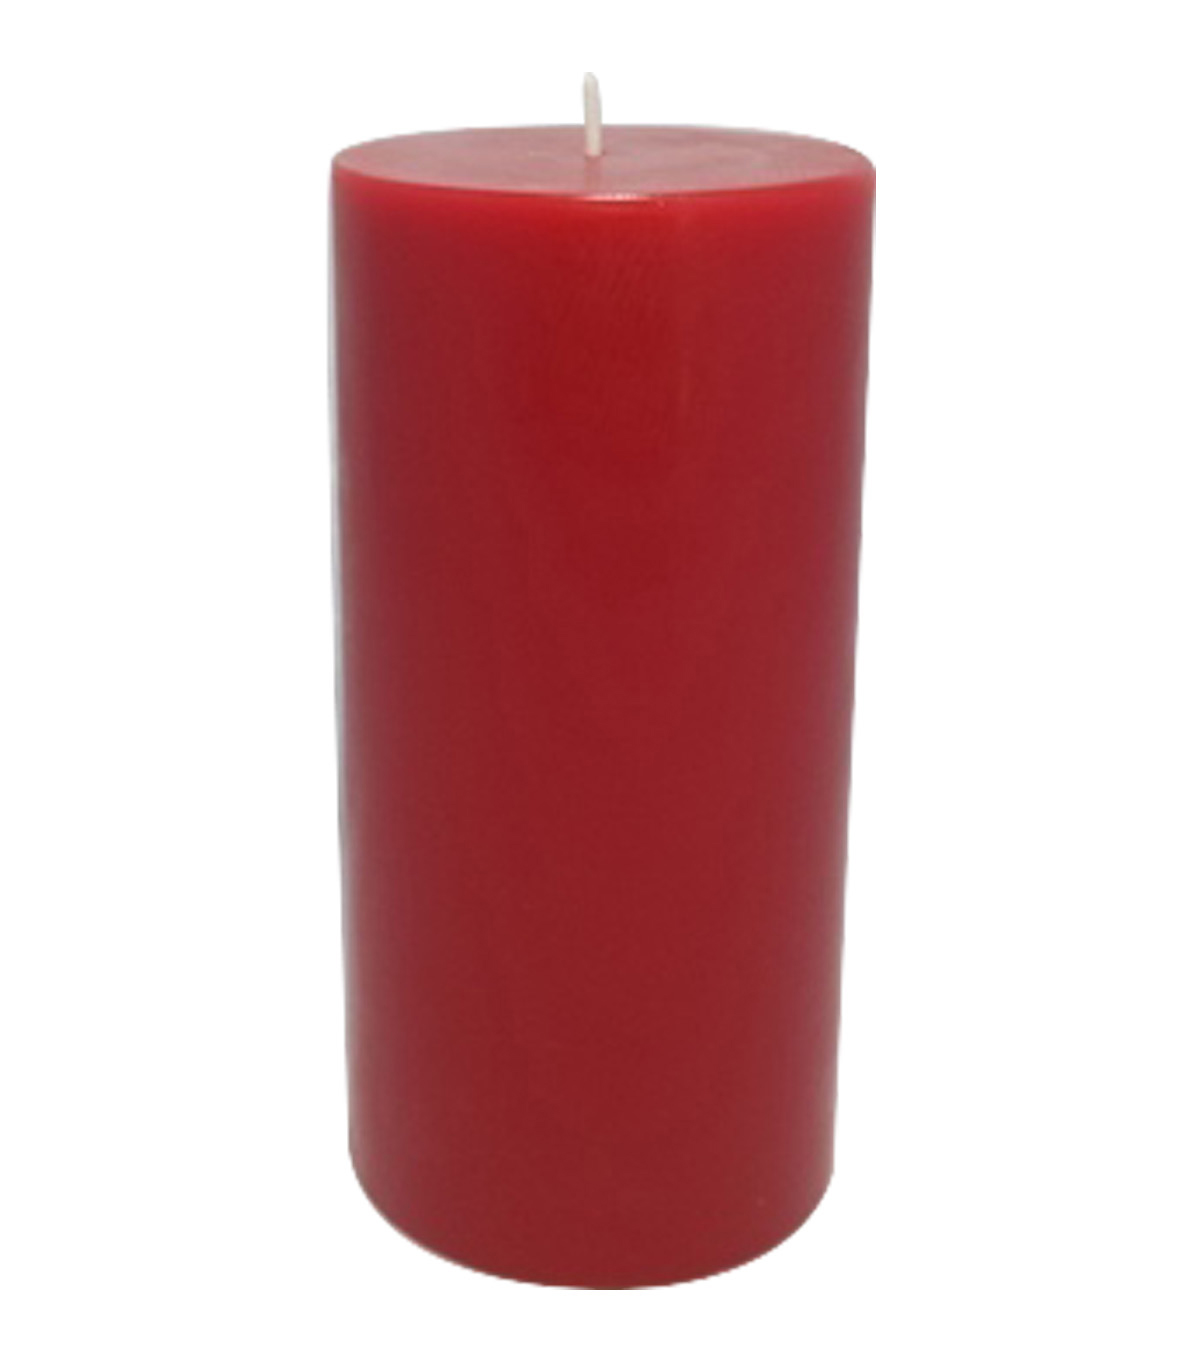 Maker\u0027s Holiday Christmas 3\u0027\u0027x6\u0027\u0027 Cinnamon Scented Pillar Candle-Red